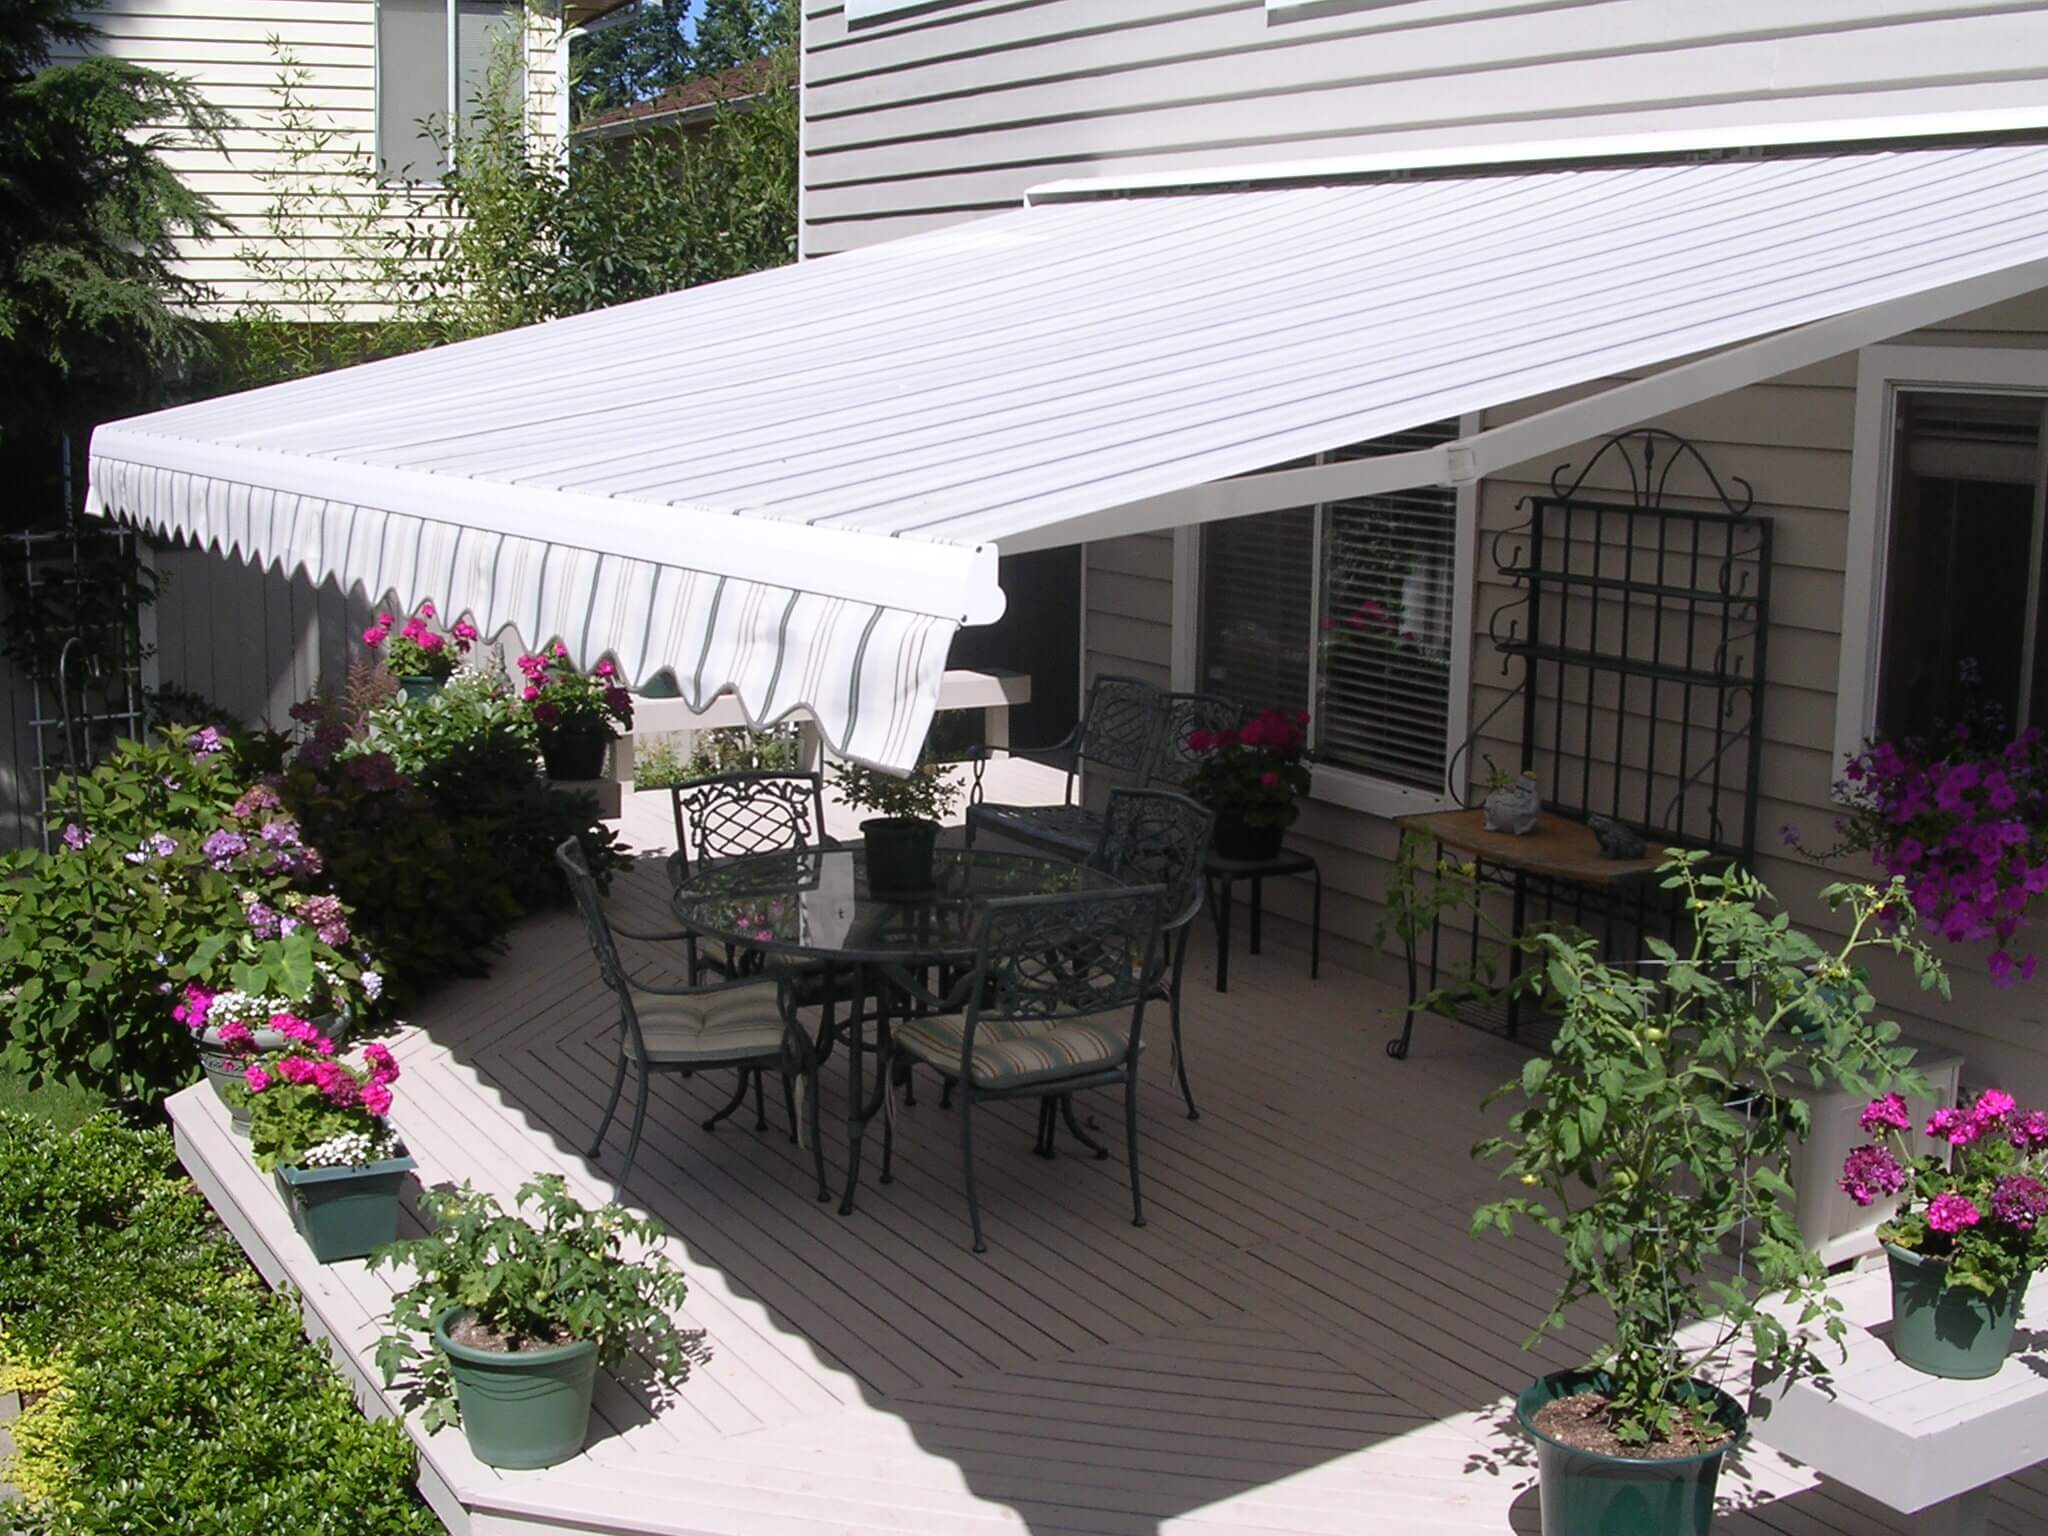 diy retractable awnings